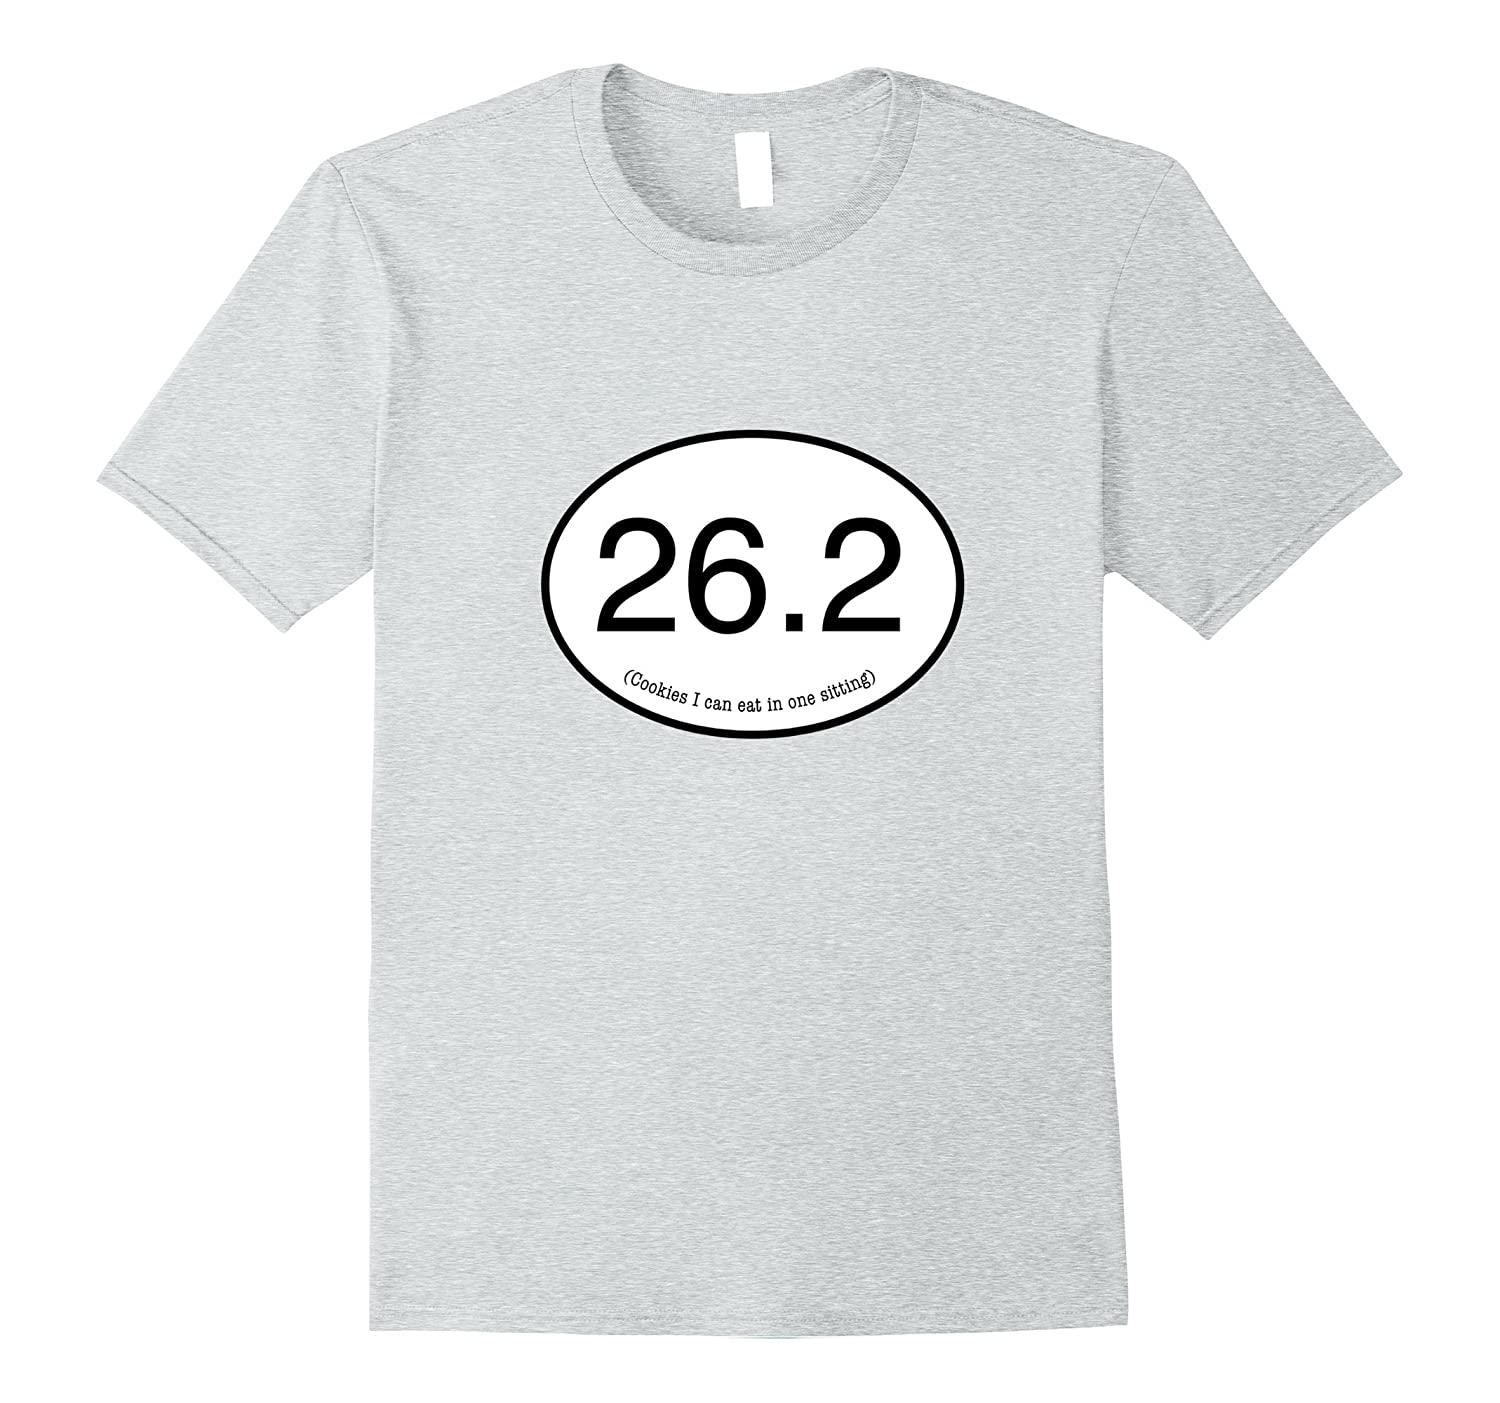 262 Funny Marathon Number of Cookies I Can Eat T Shirt-PL